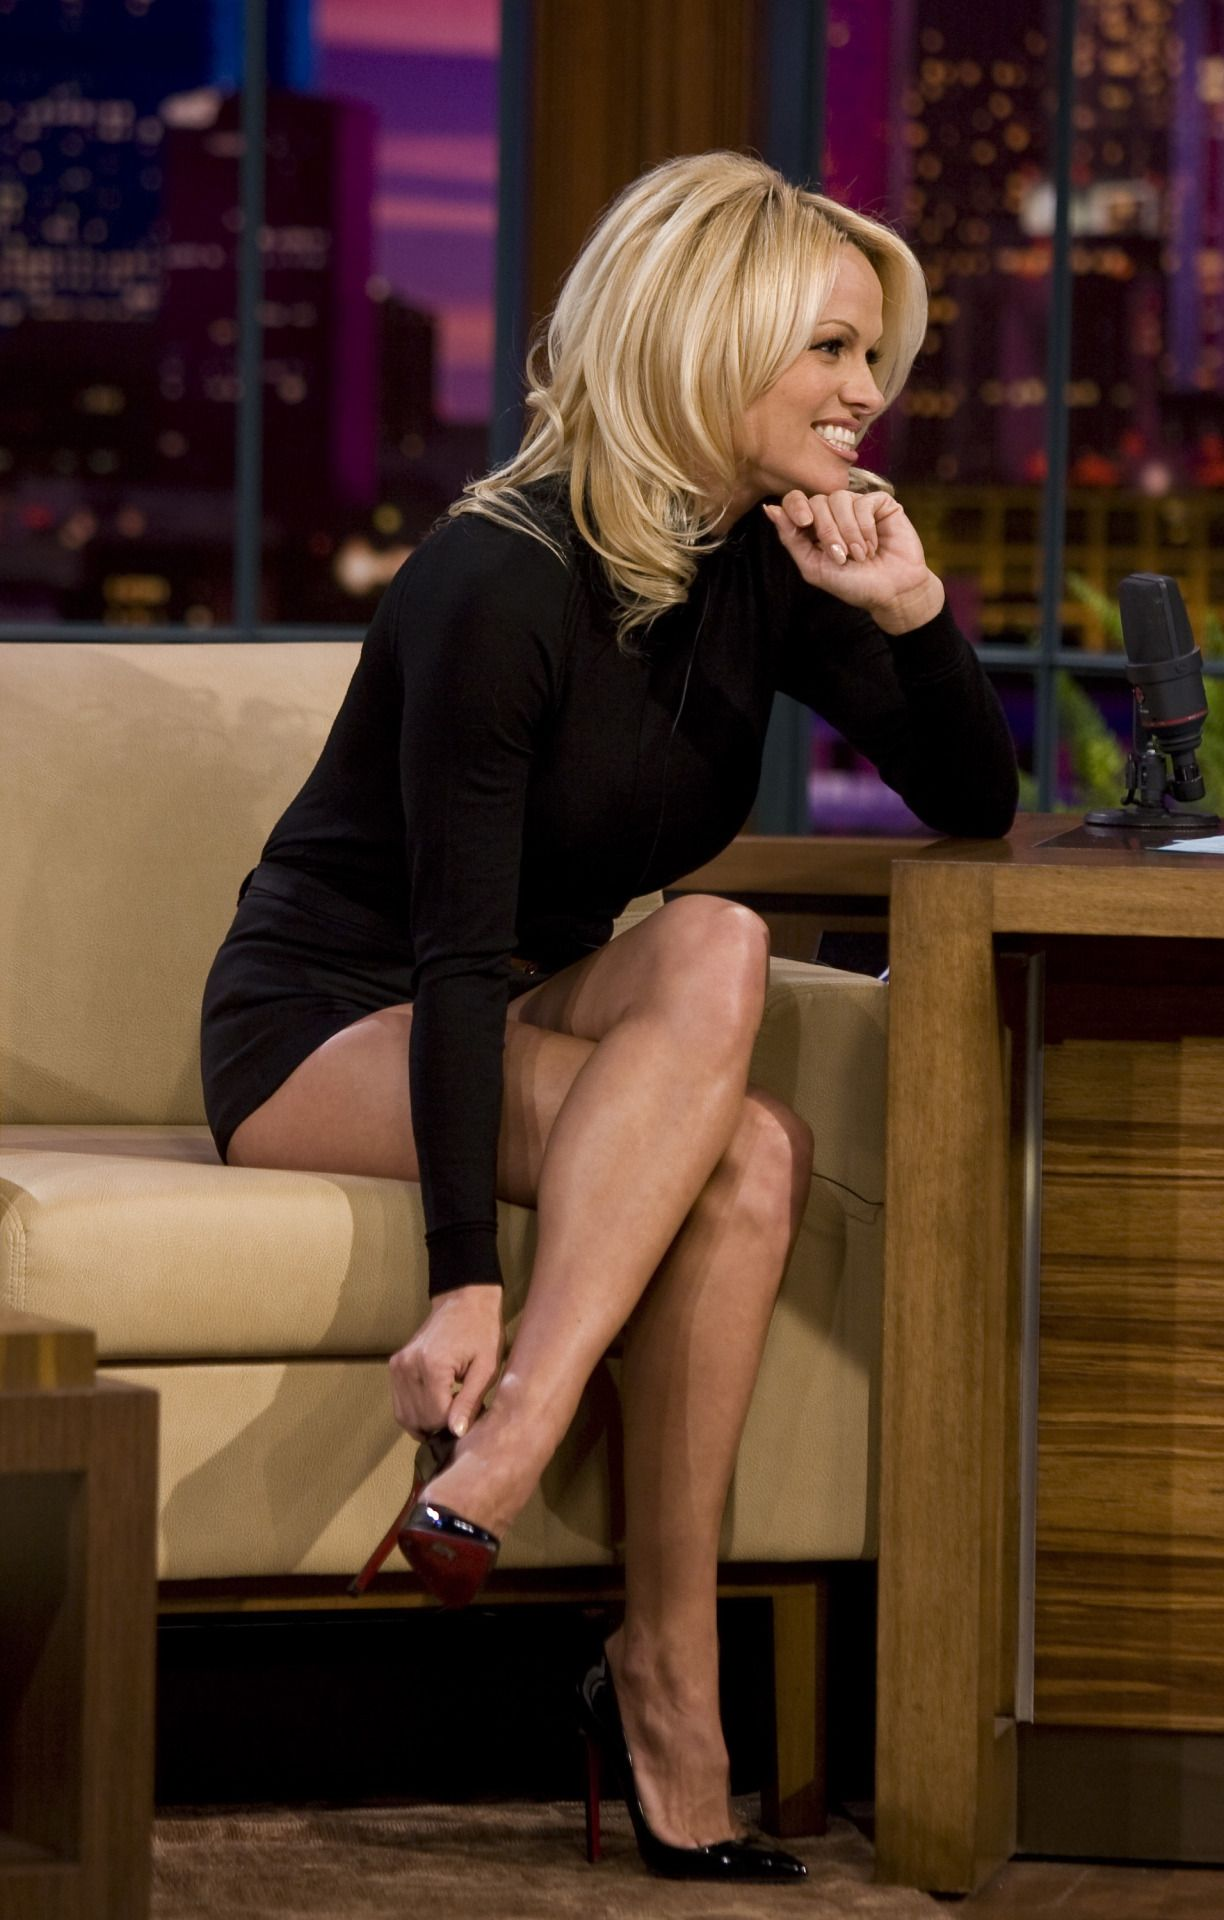 Pamela Anderson has great legs and knows how to use them